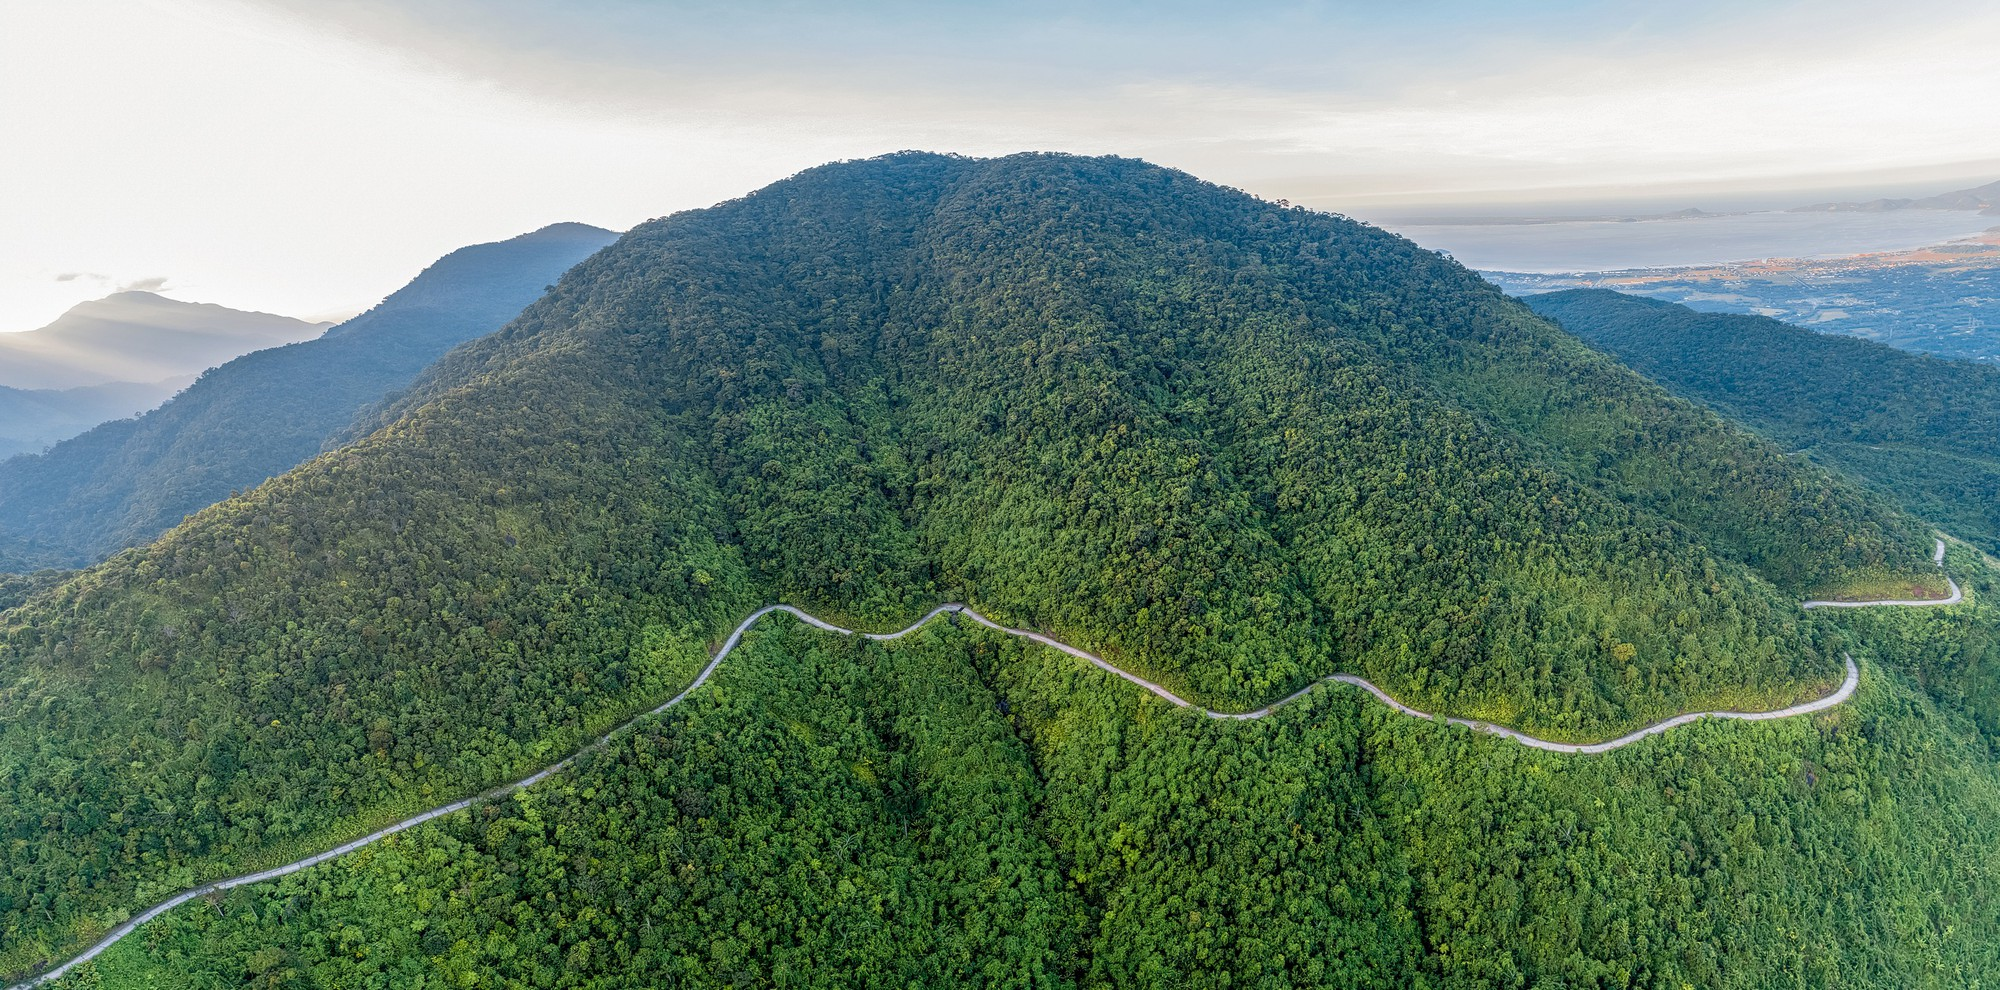 A pass on the side of the Bach Ma Range in central Vietnam. Photo: Nguyen Phong